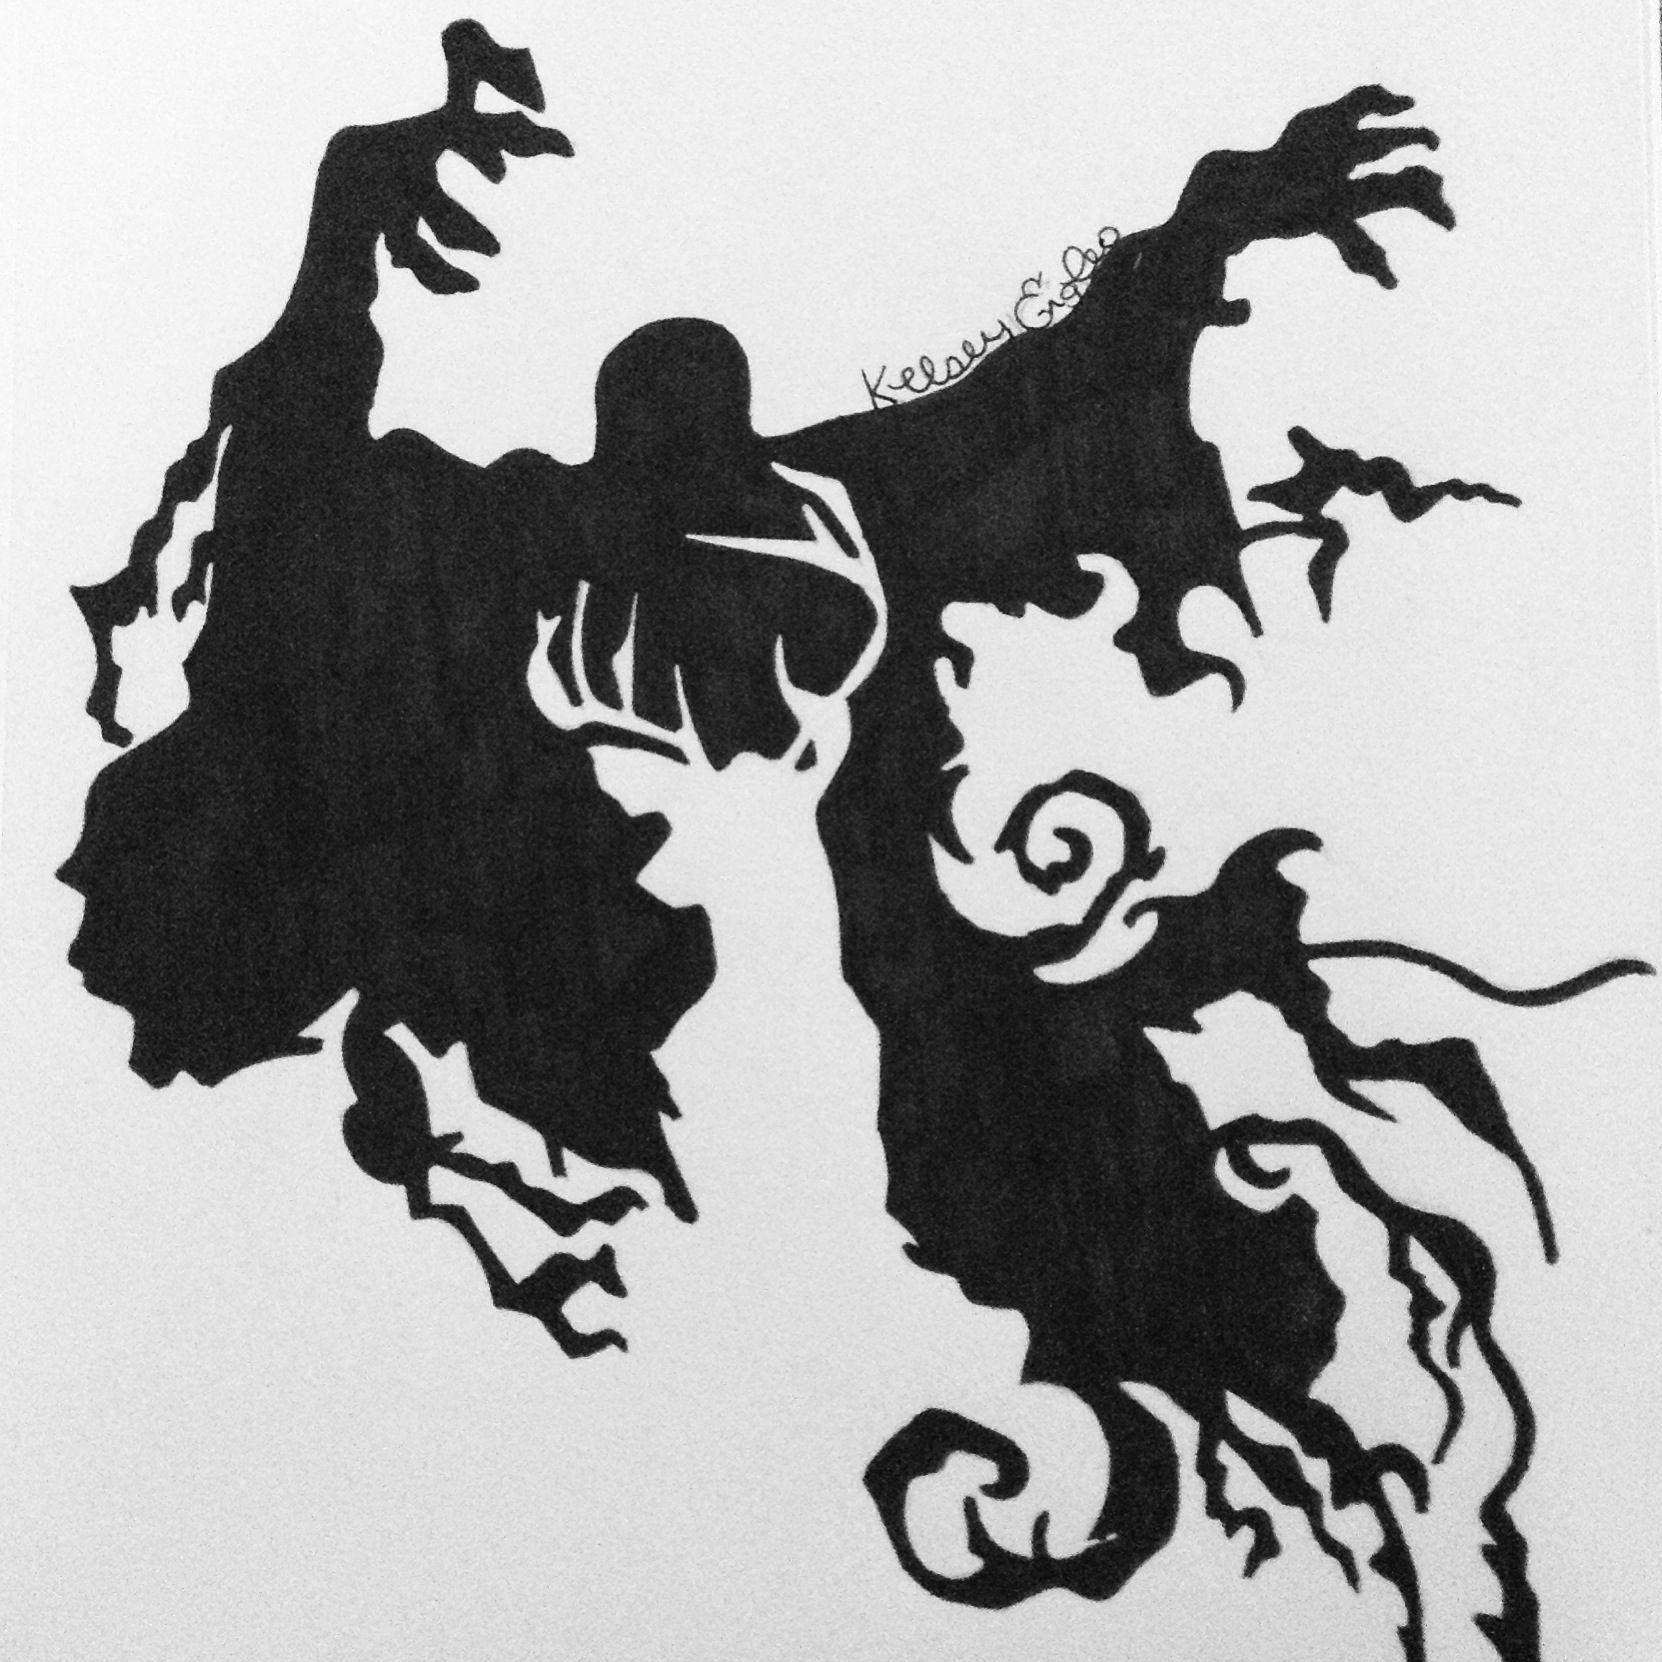 Drawn stag silhouette And Dementor  Dementor Engles